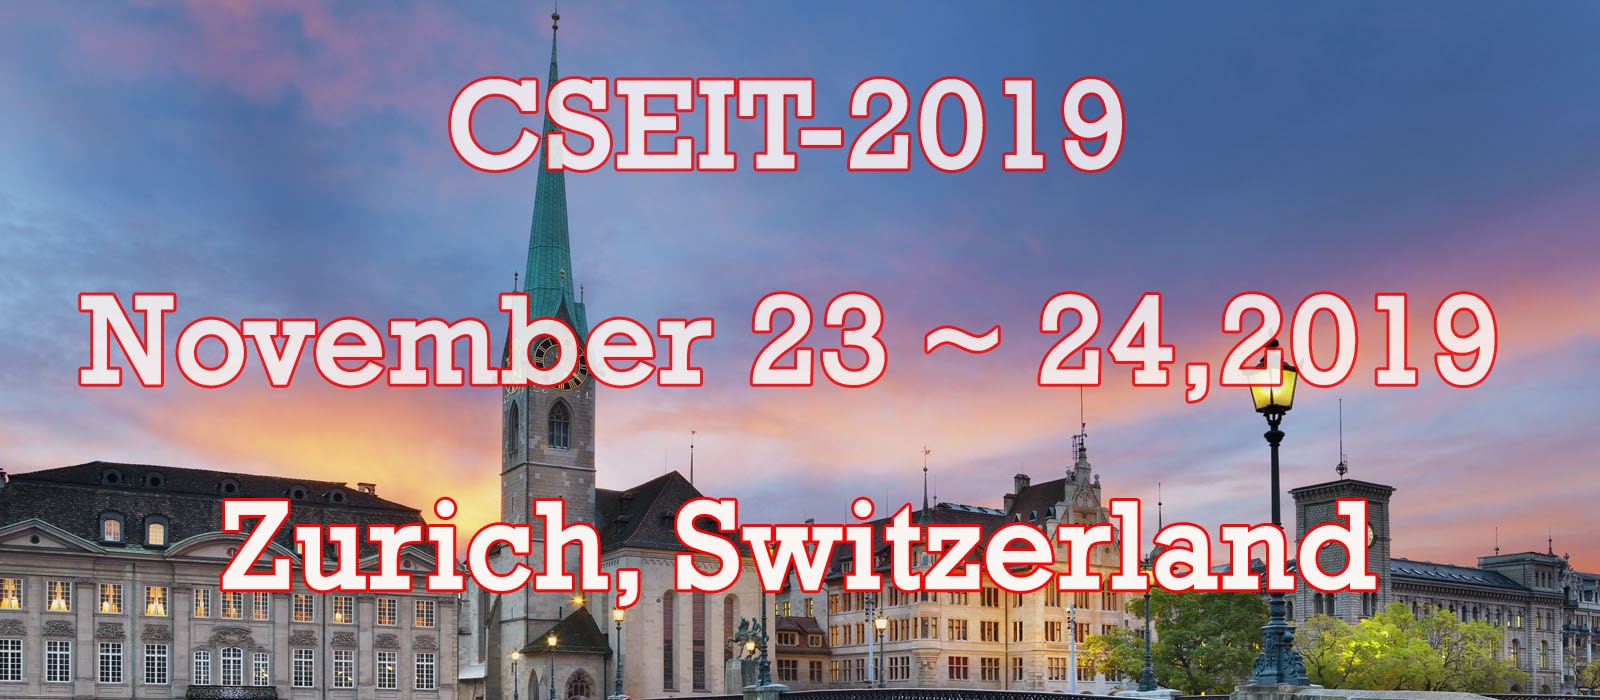 6th International Conference on Computer Science, Engineering and Information Technology (CSEIT-2019)